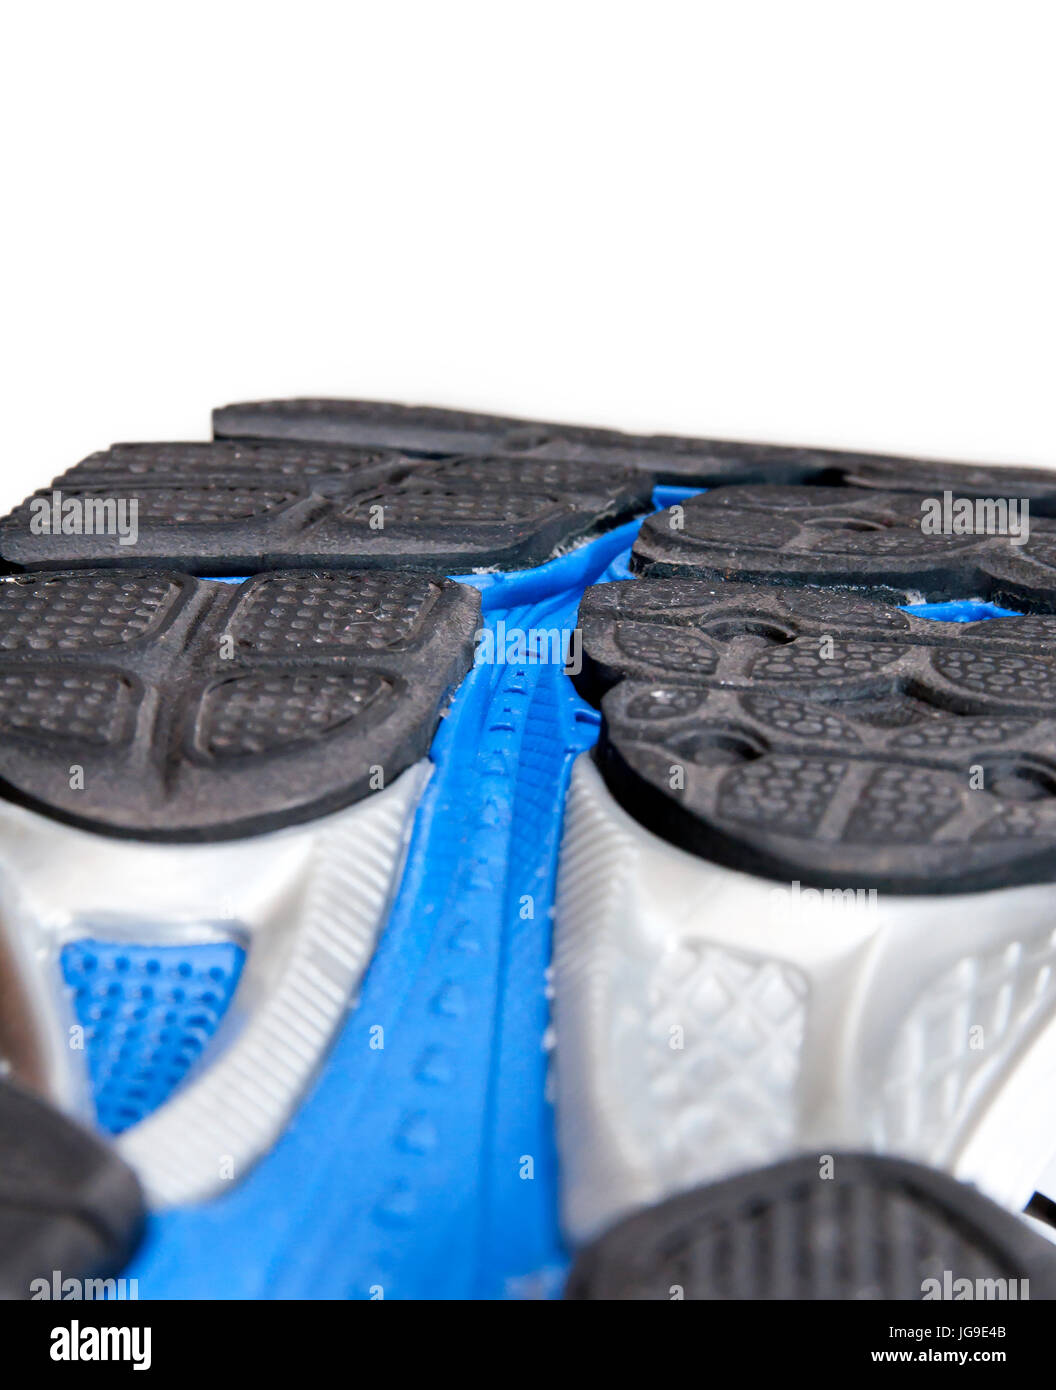 Running shoe: the out-sole - Stock Image